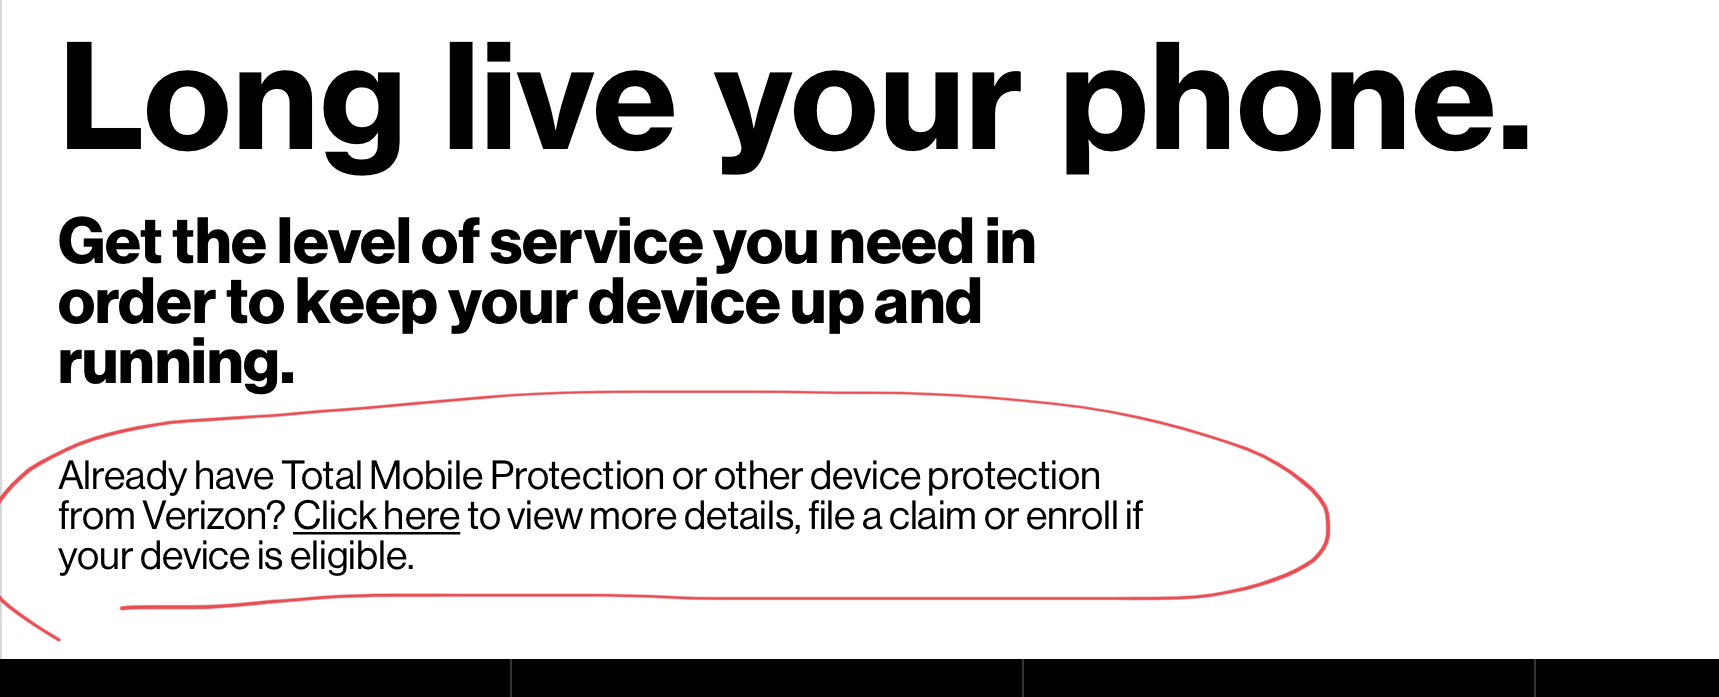 Why Do Verizon Sales Reps Claim That Asurion Cover Verizon